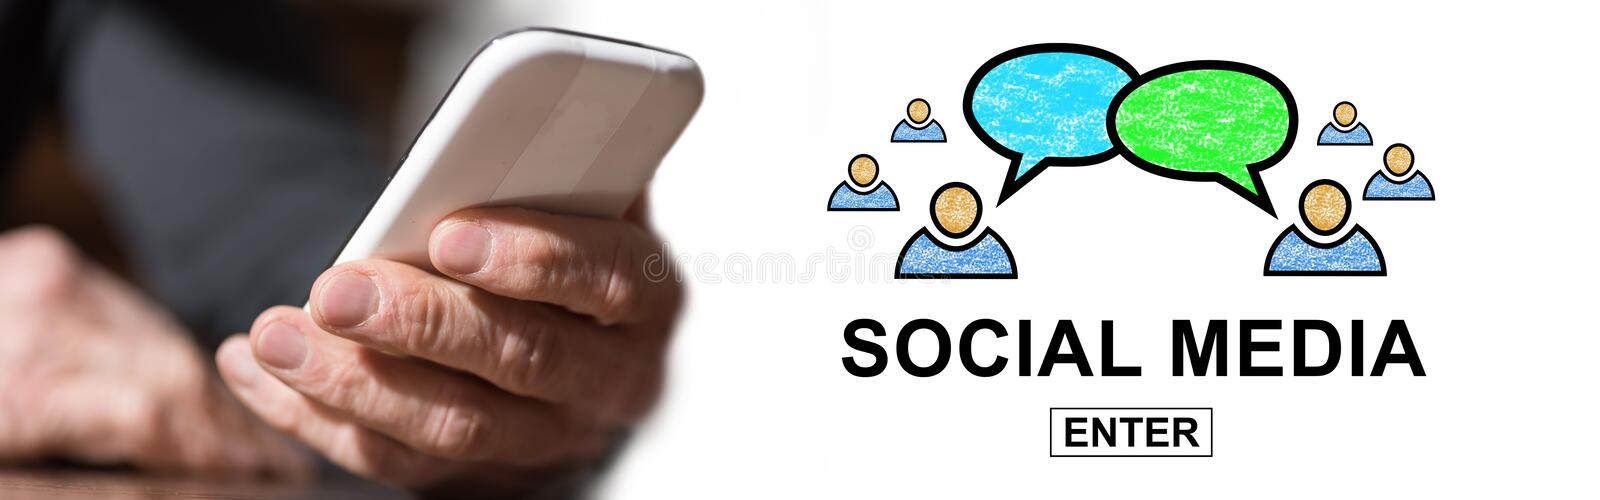 Concept of social media. Hand holding mobil phone with social media concept on background stock image